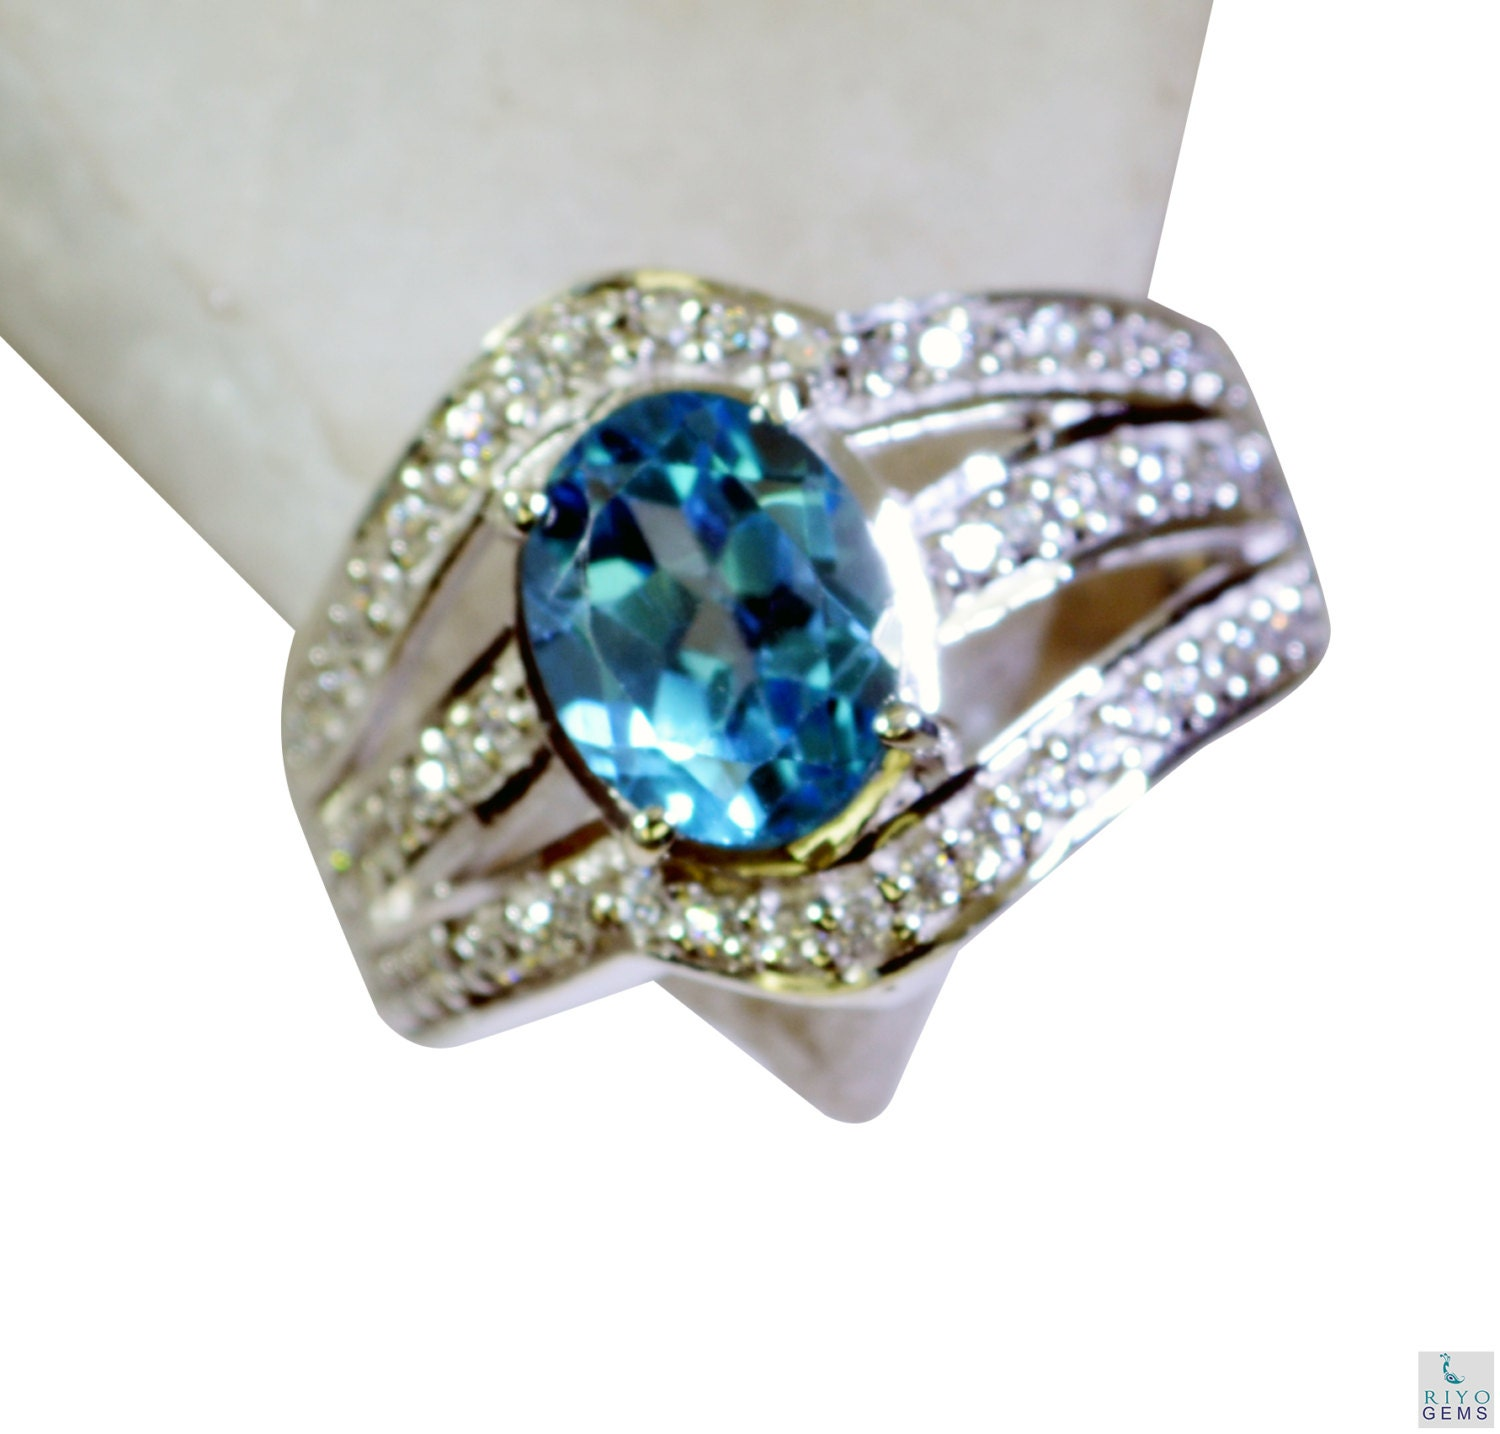 blue topaz overstock silver jewelry guard ring sz 7 by